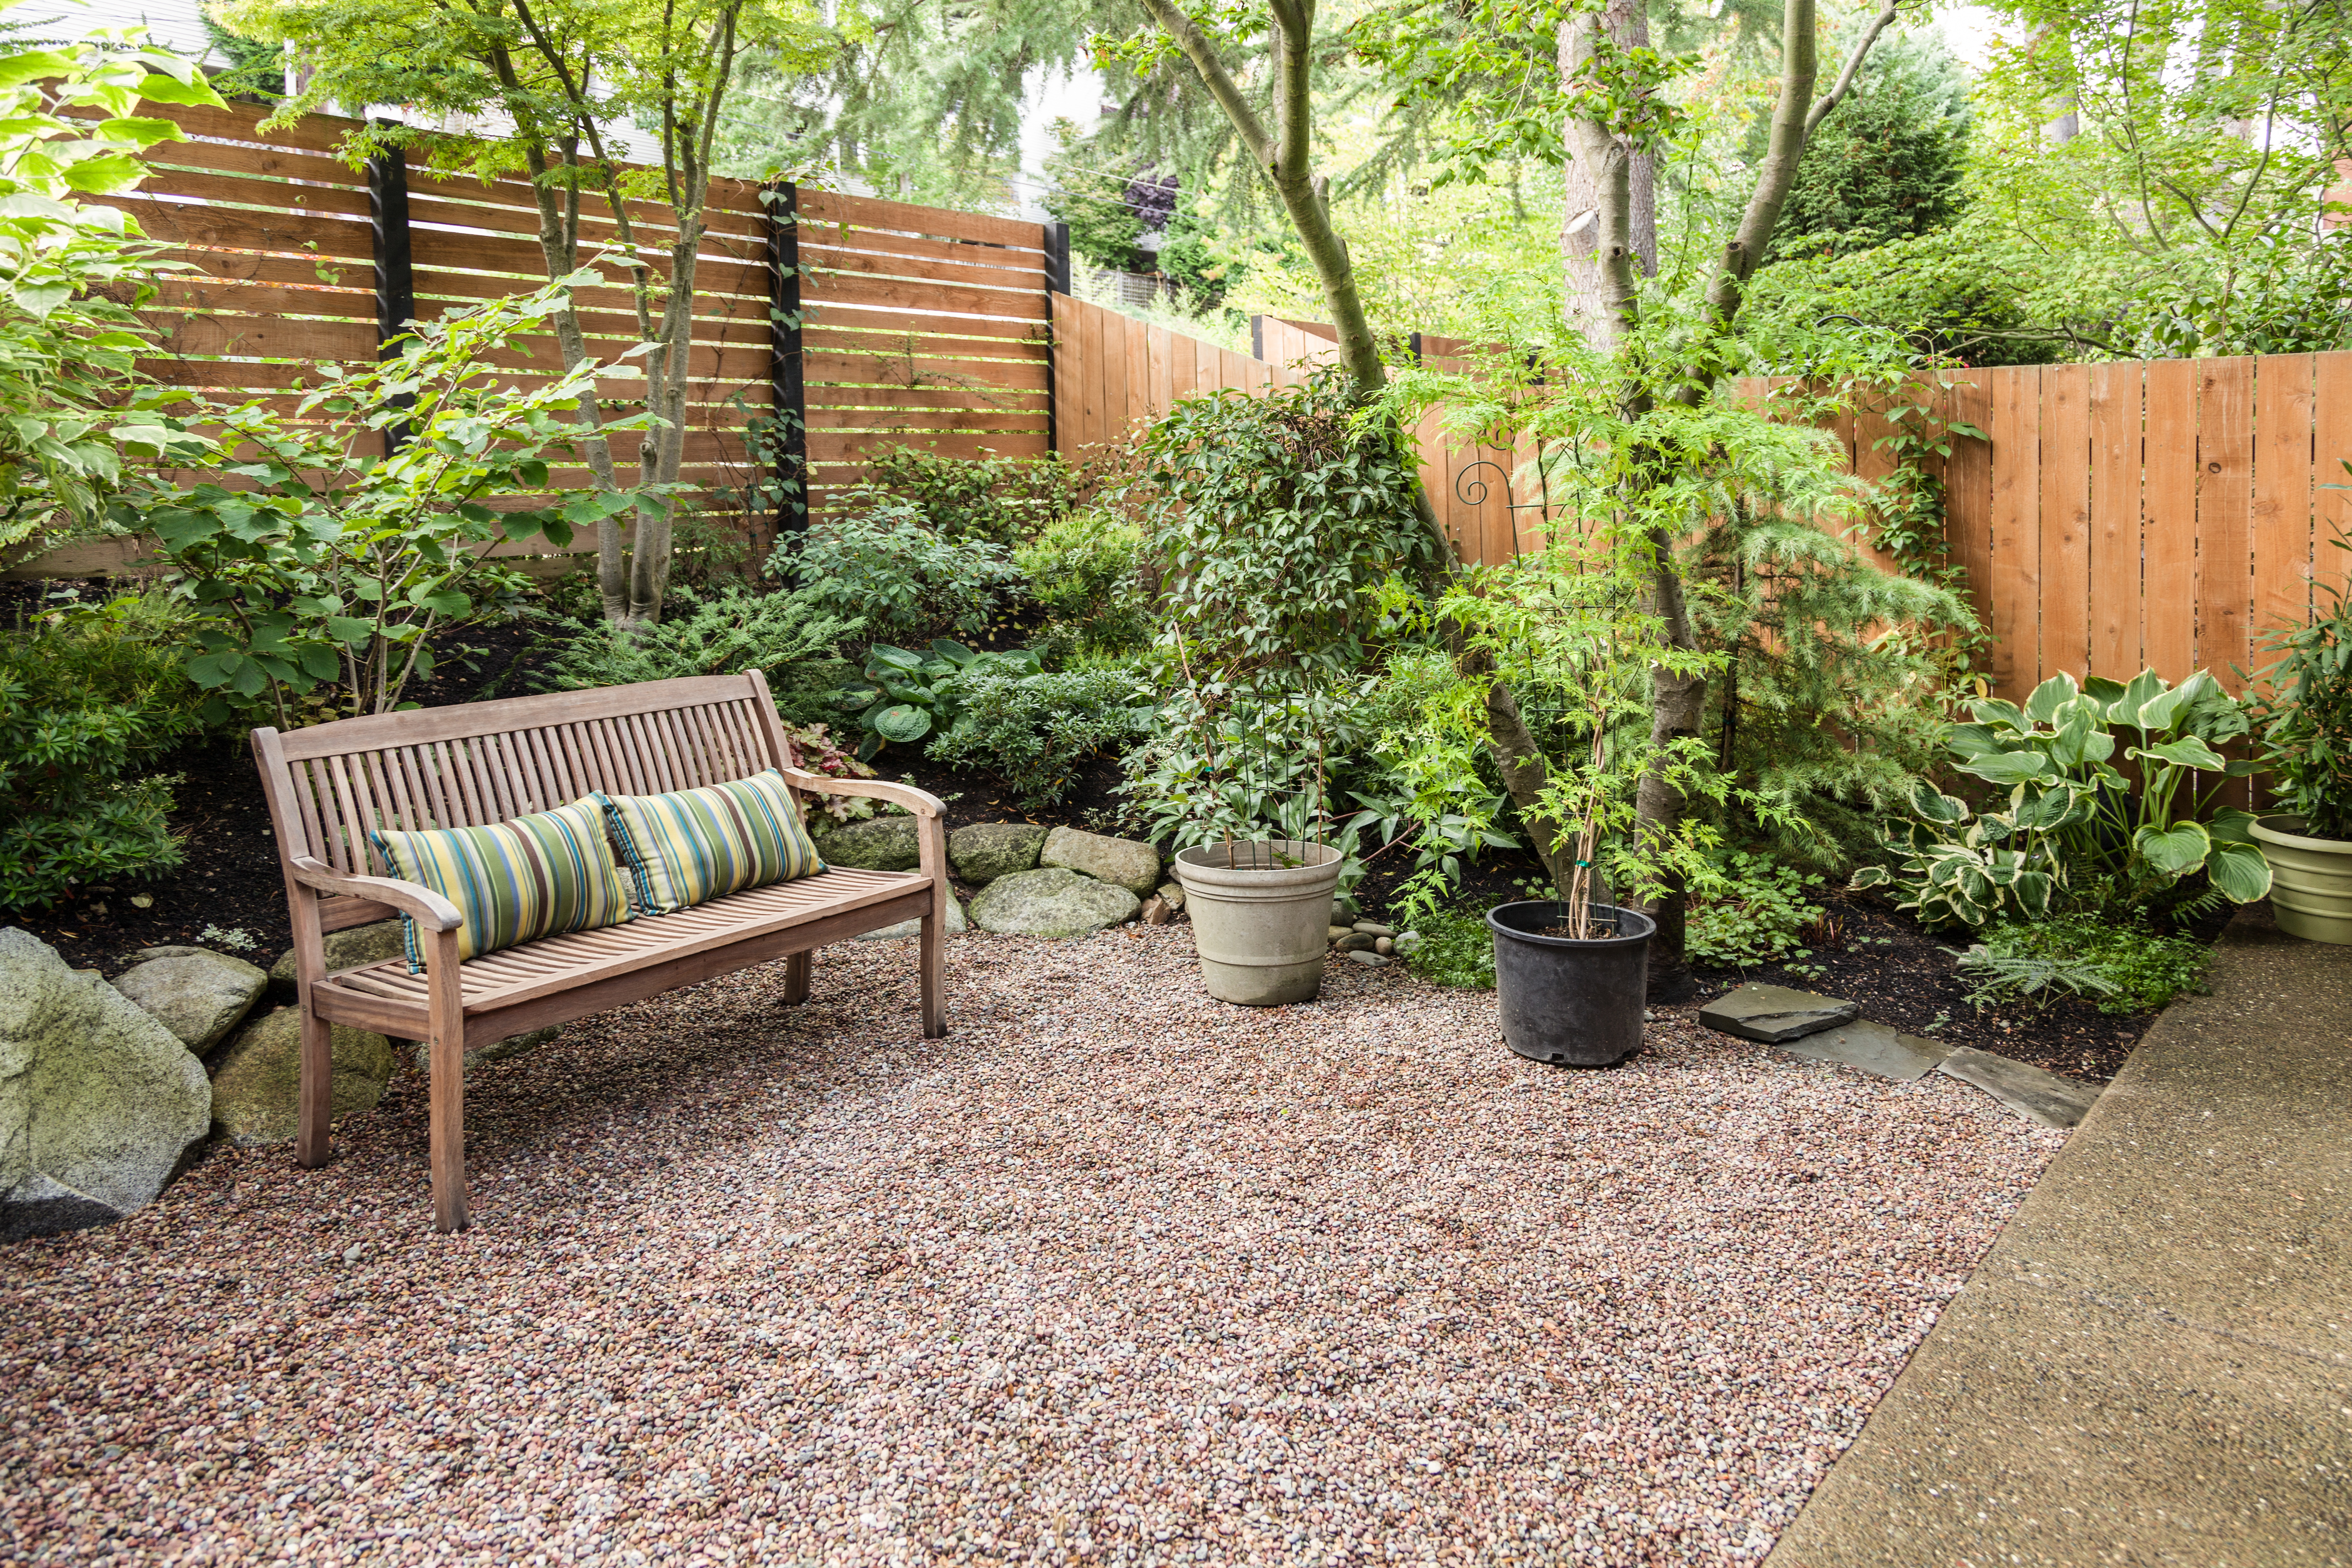 Low Maintenance Landscaping for Your Rental Property